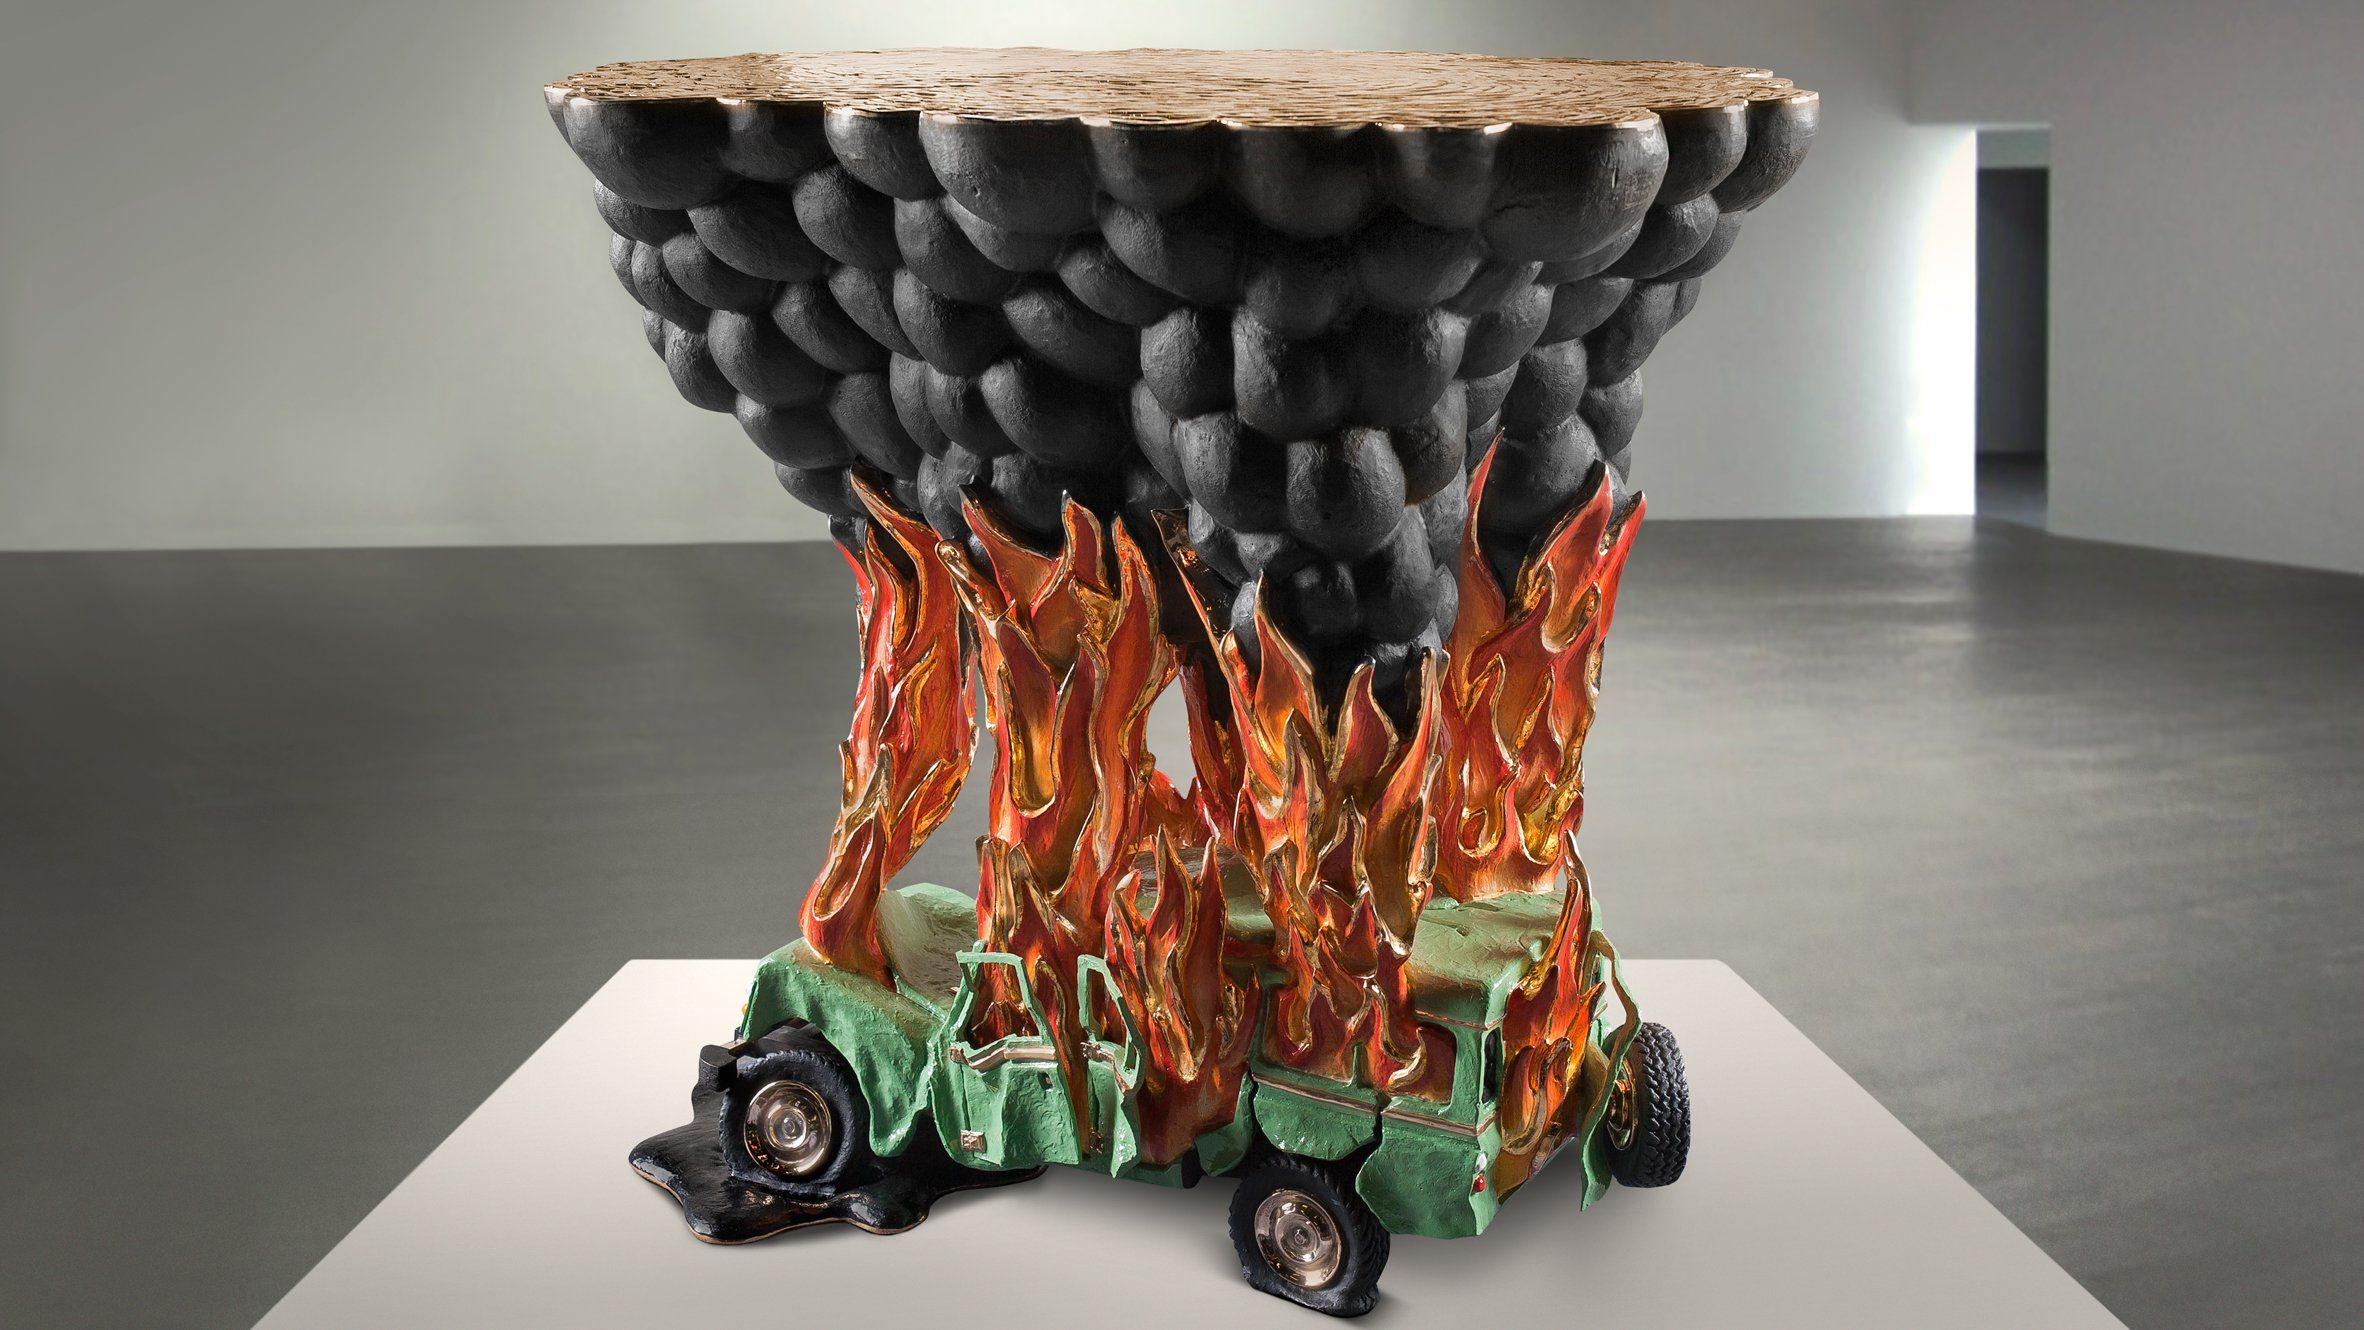 Studio Job has expanded on its autobiographical Train Crash table with a coffee table version depicting a burning car